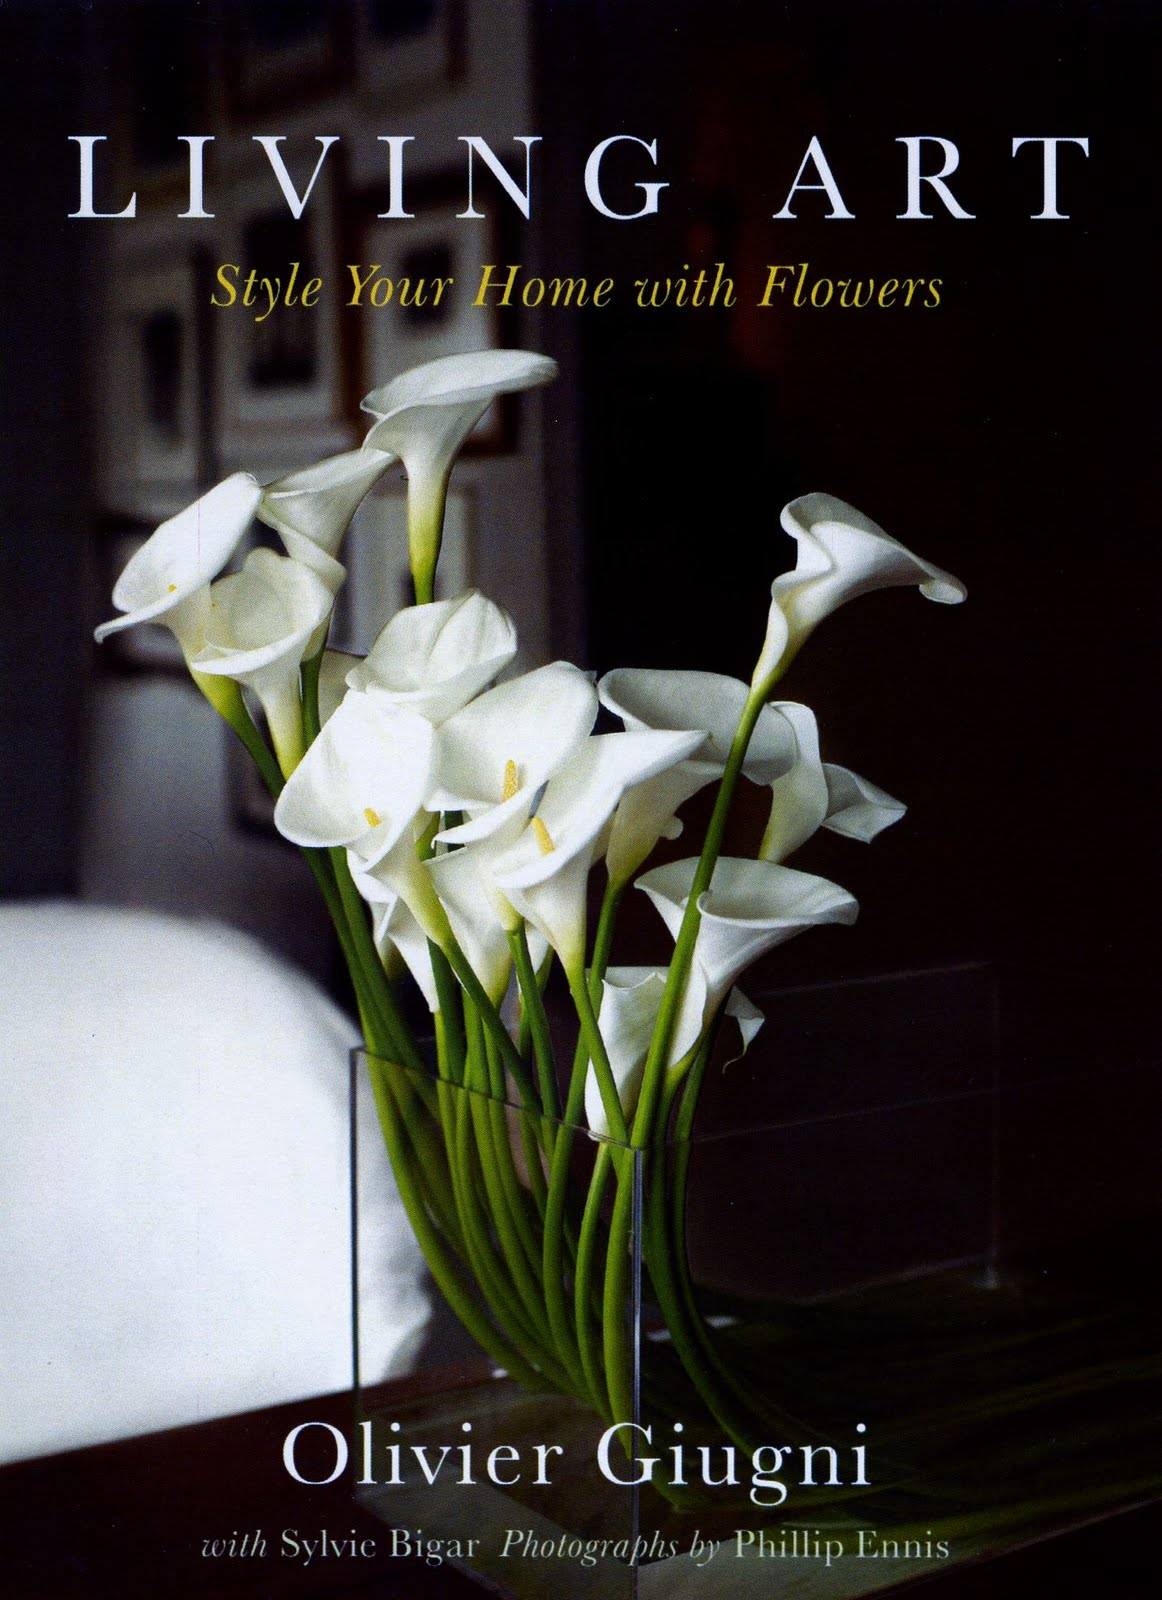 HauteZone: Living Art - Style Your Home with Flowers